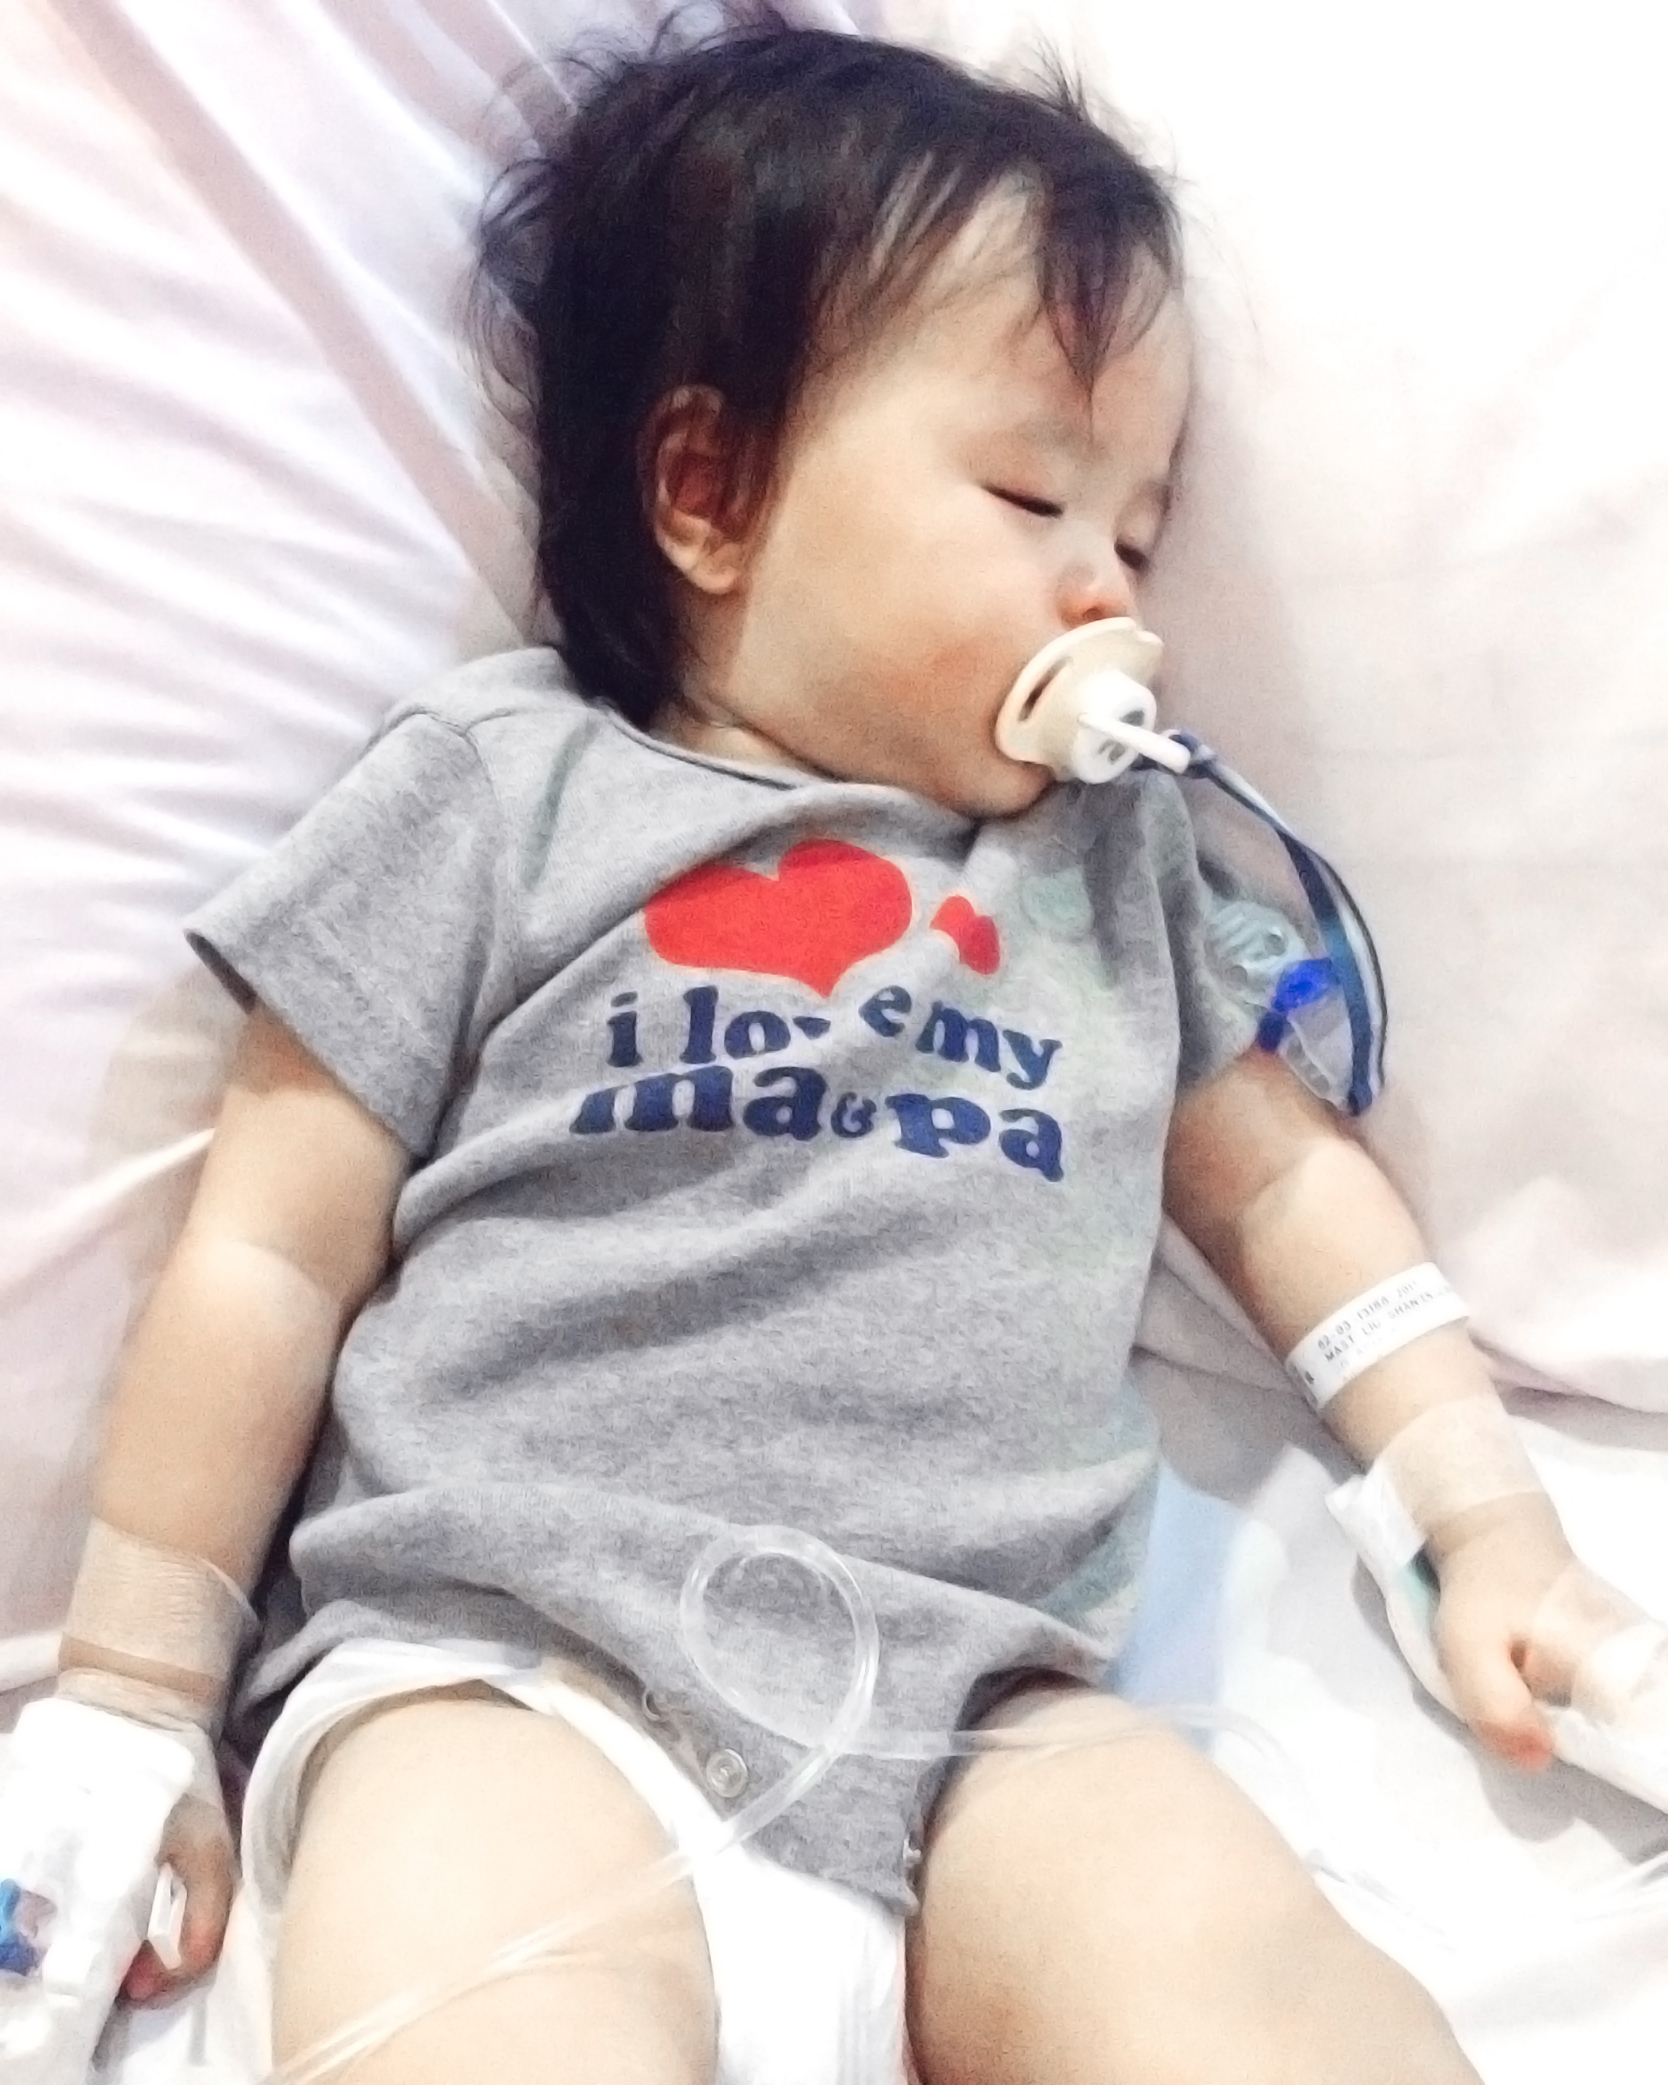 hospitalization stay for child in singapore thomson medical centre for bronchiolitis